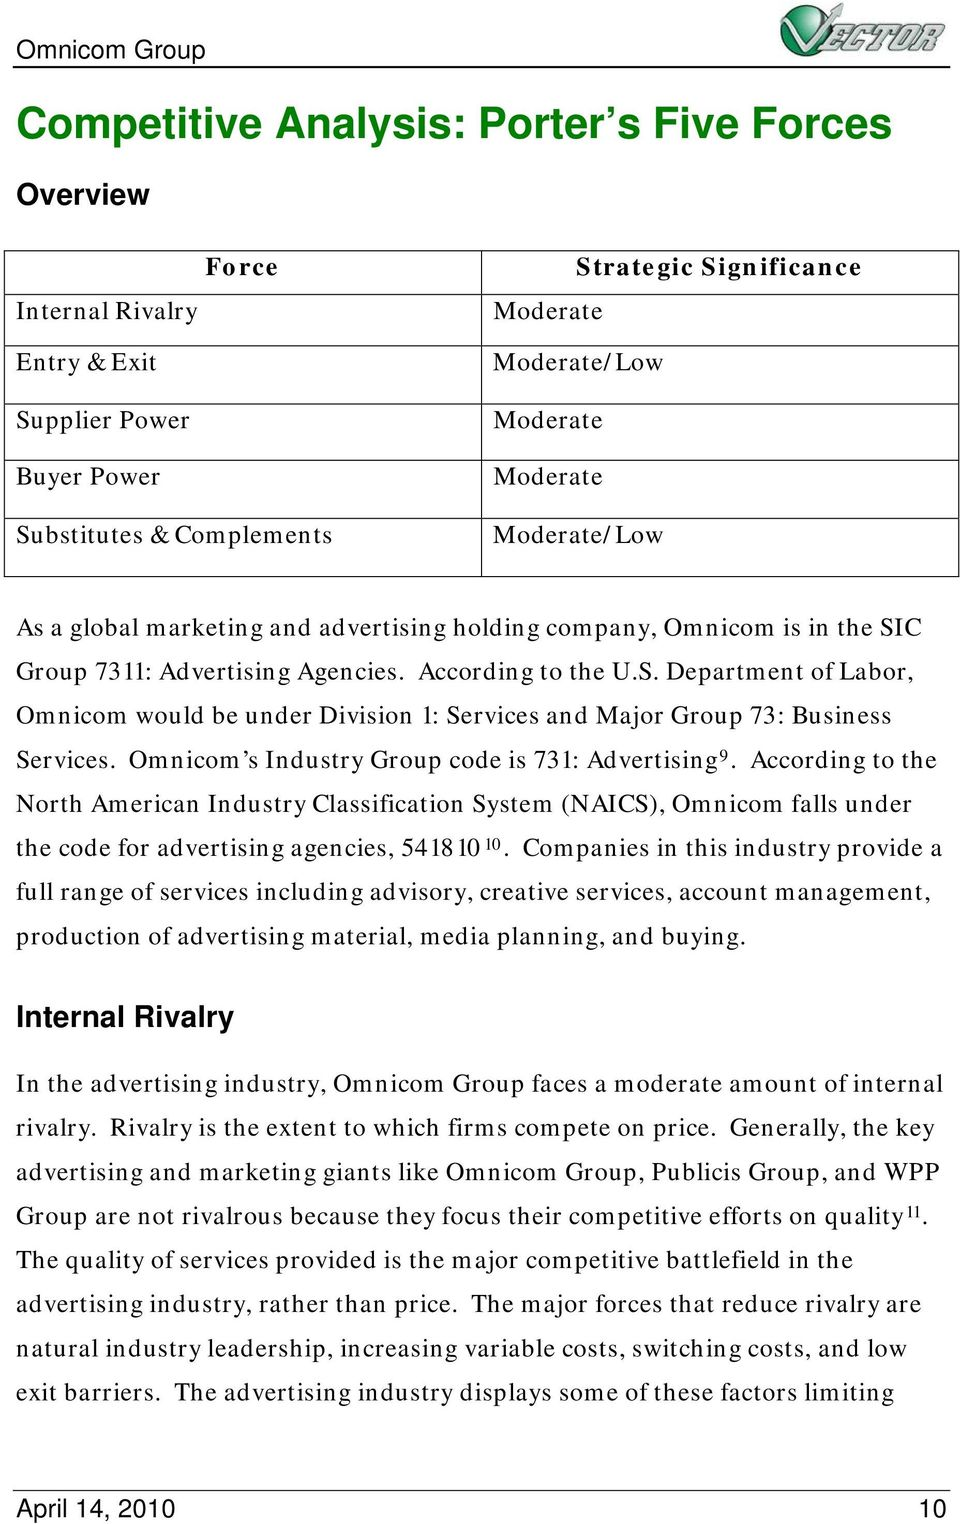 C Group 7311: Advertising Agencies. According to the U.S. Department of Labor, Omnicom would be under Division 1: Services and Major Group 73: Business Services.